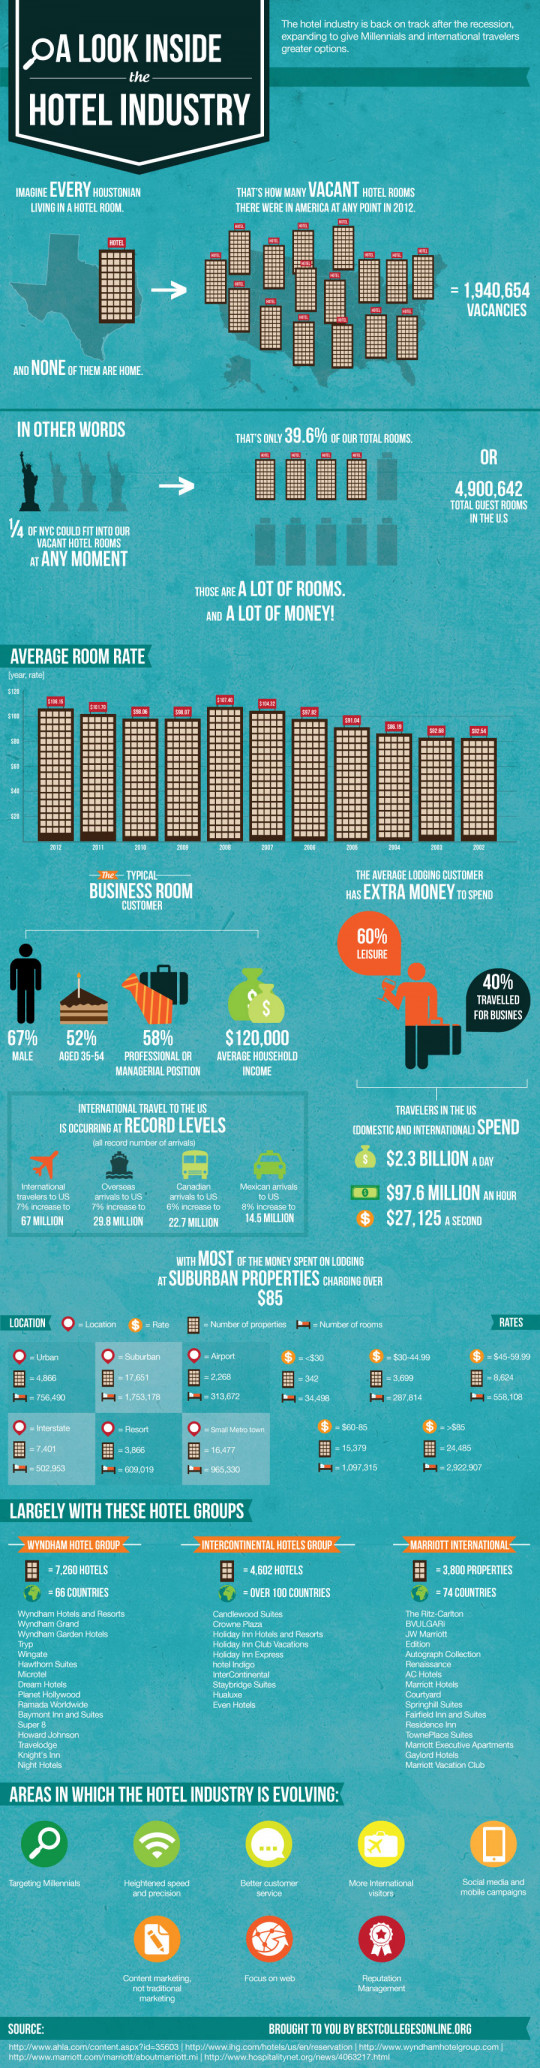 A Look Inside The Hotel Industry